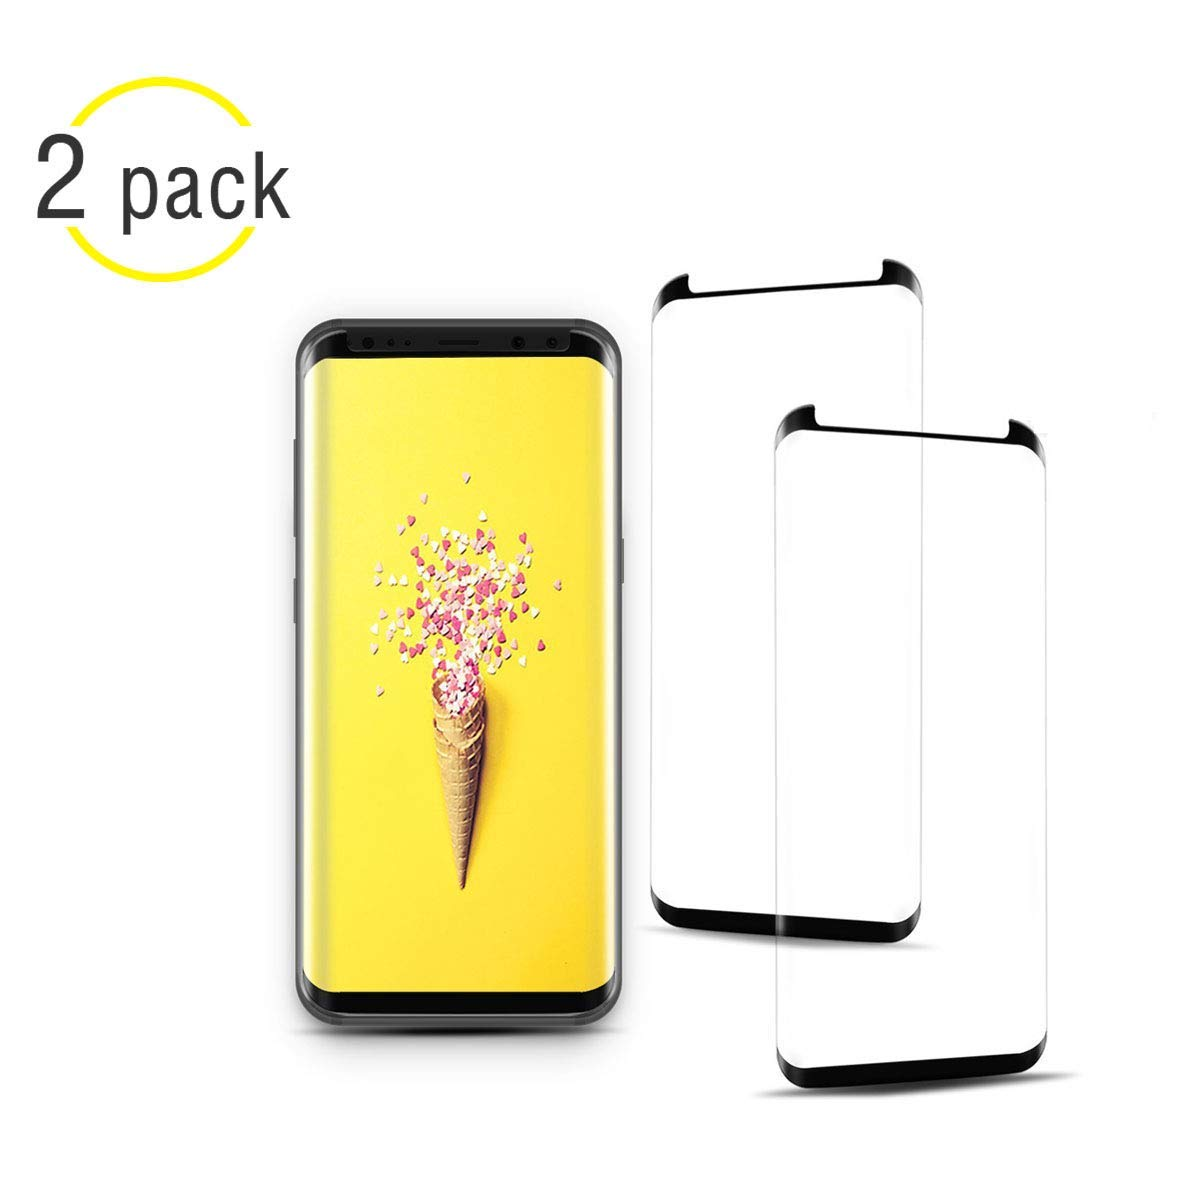 [2 Pack] NiceFuse Galaxy S9 Screen Protector, 3D Full Screen Coverage Glass [Curved] [Bubble-Free] [9H Hardness] [Anti-Scratch] Galaxy S9 Tempered Glass Screen Protectors Compatible Samsung Galaxy S9